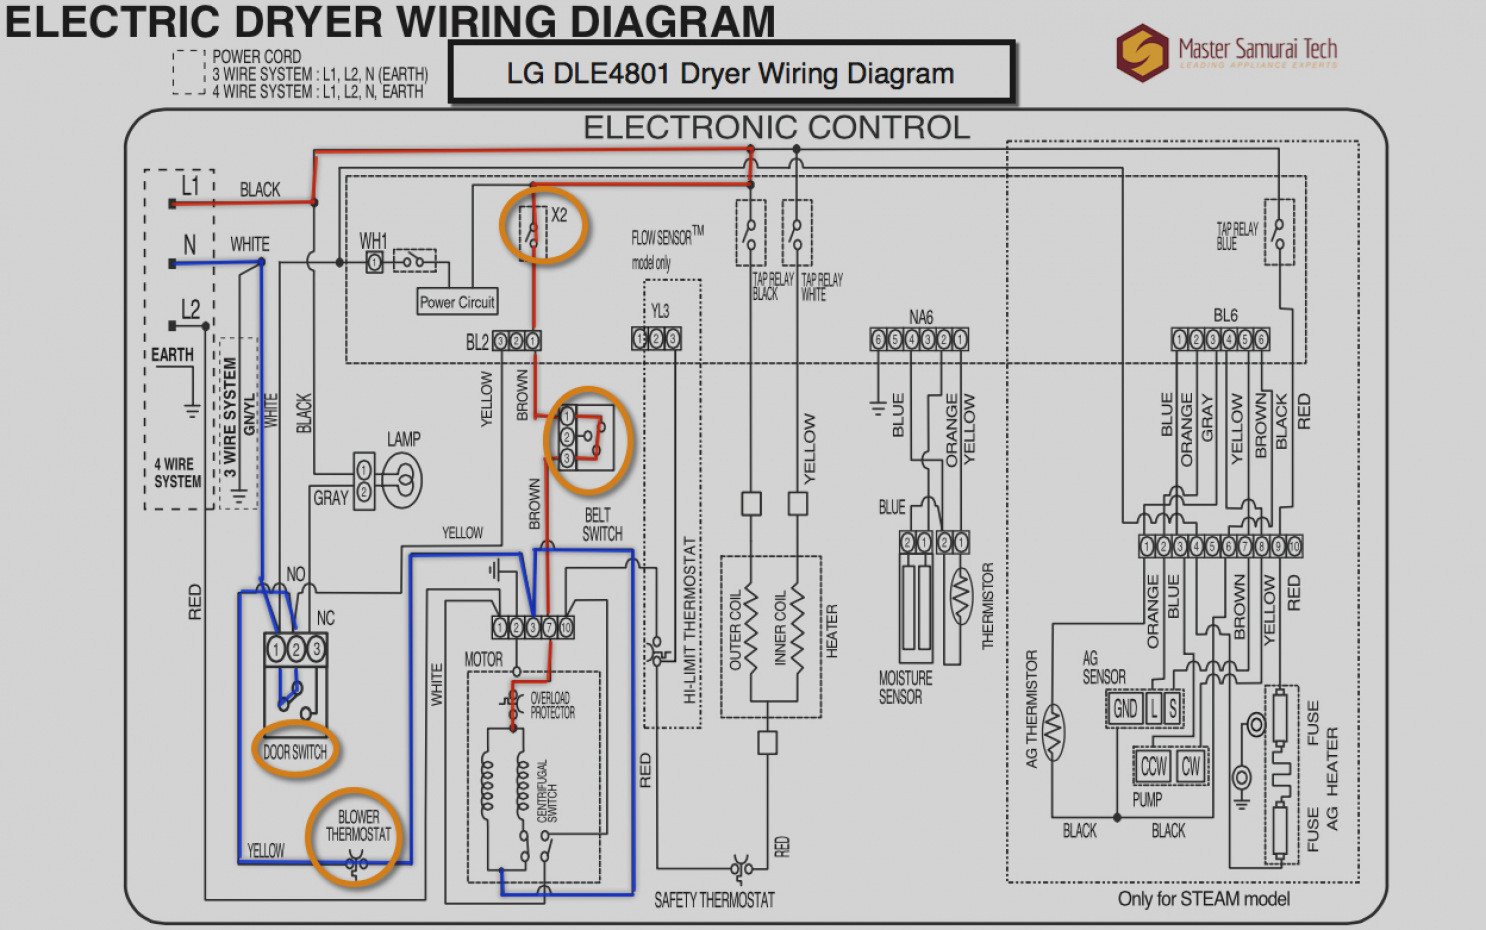 wiring diagram for electrolux dryer wiring diagram Midea Wiring Diagram wiring diagram for electrolux dryer wiring diagram detailedelectrolux dryer wiring diagram wiring diagram explained body parts